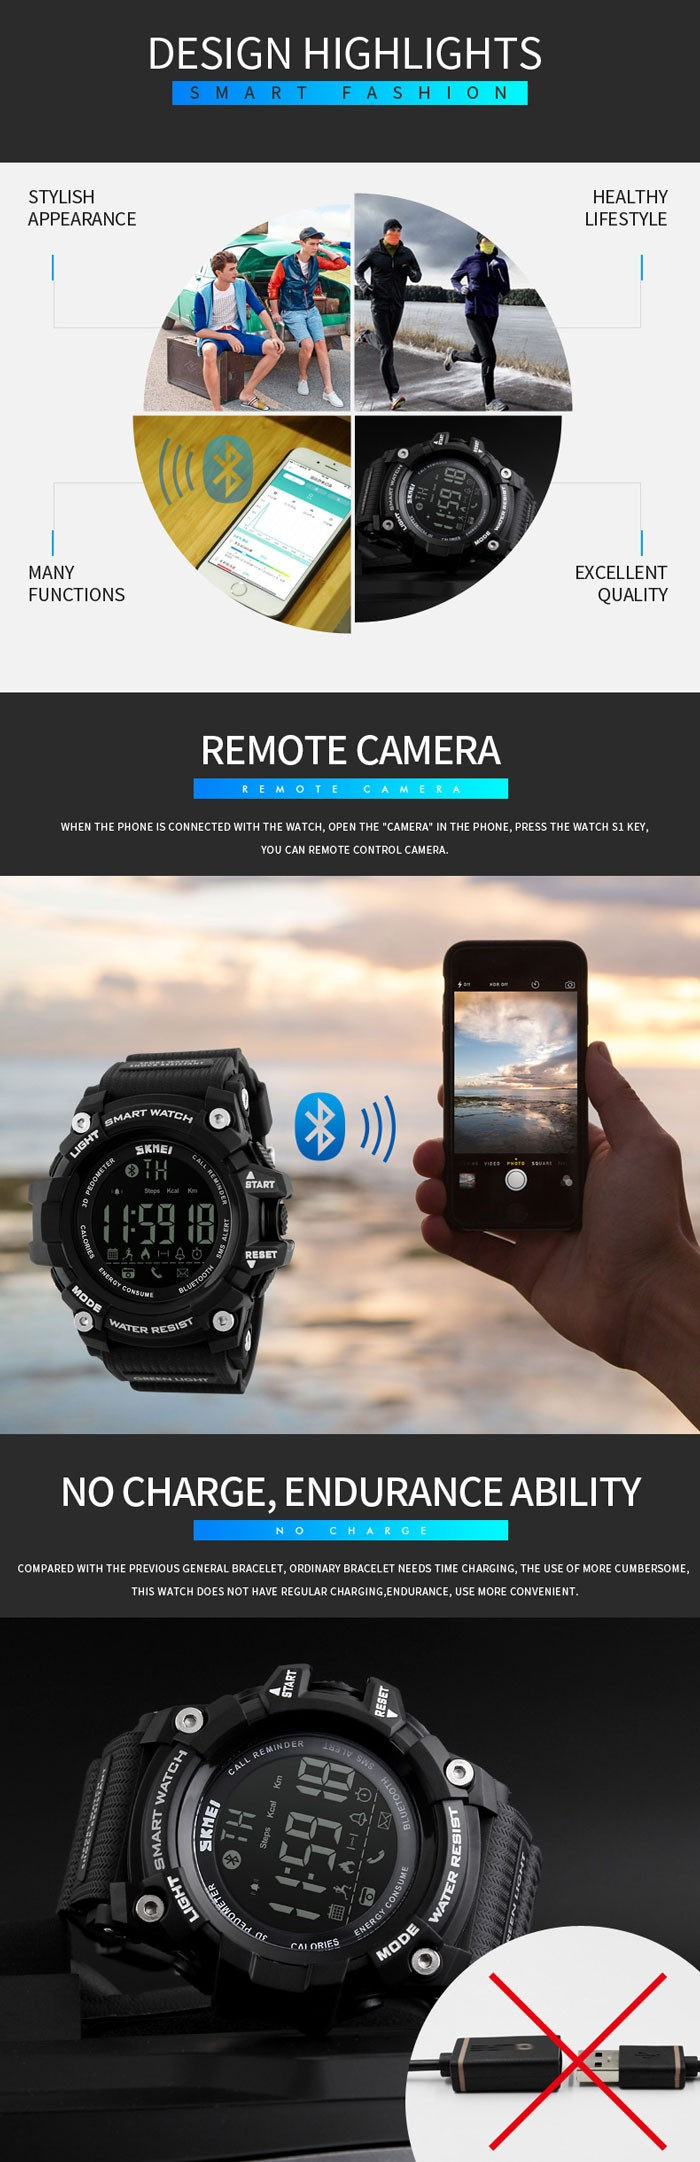 skmei 1227 relojes inteligentes  smart watch manual